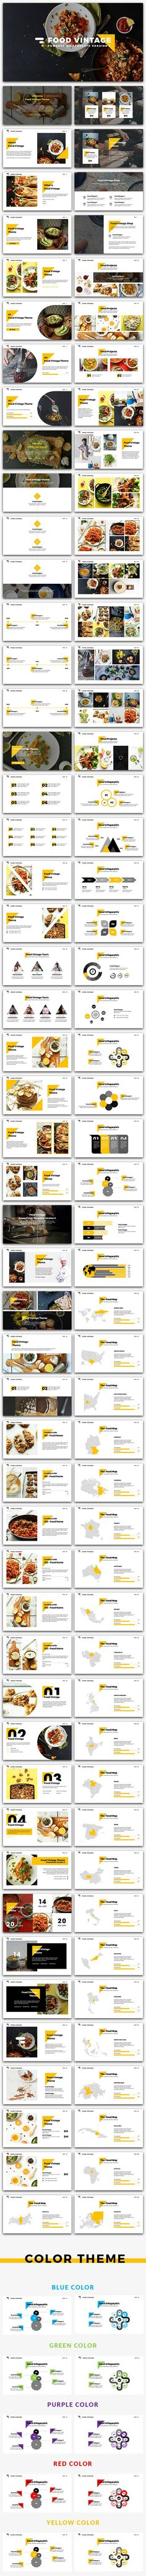 Food Vintage PowerPoint Template. Download here: http://graphicriver.net/item/food-vintage-powerpoint-version-2/15641670?ref=ksioks